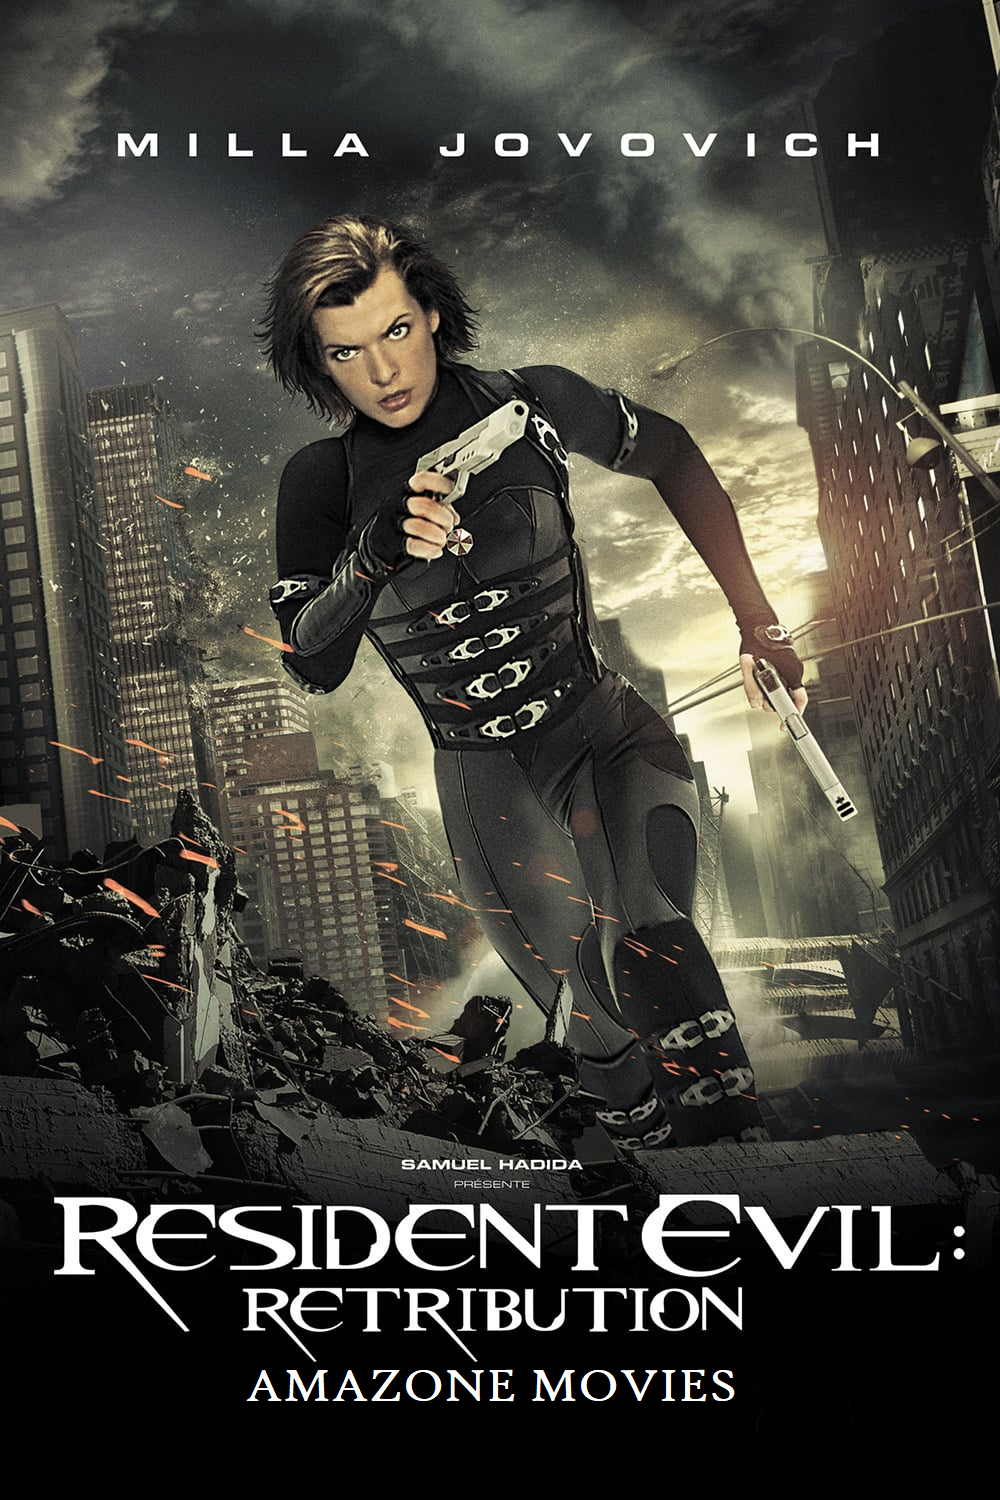 Resident Evil Retribution 2012 Part 5 Full Movie Hd Hindi